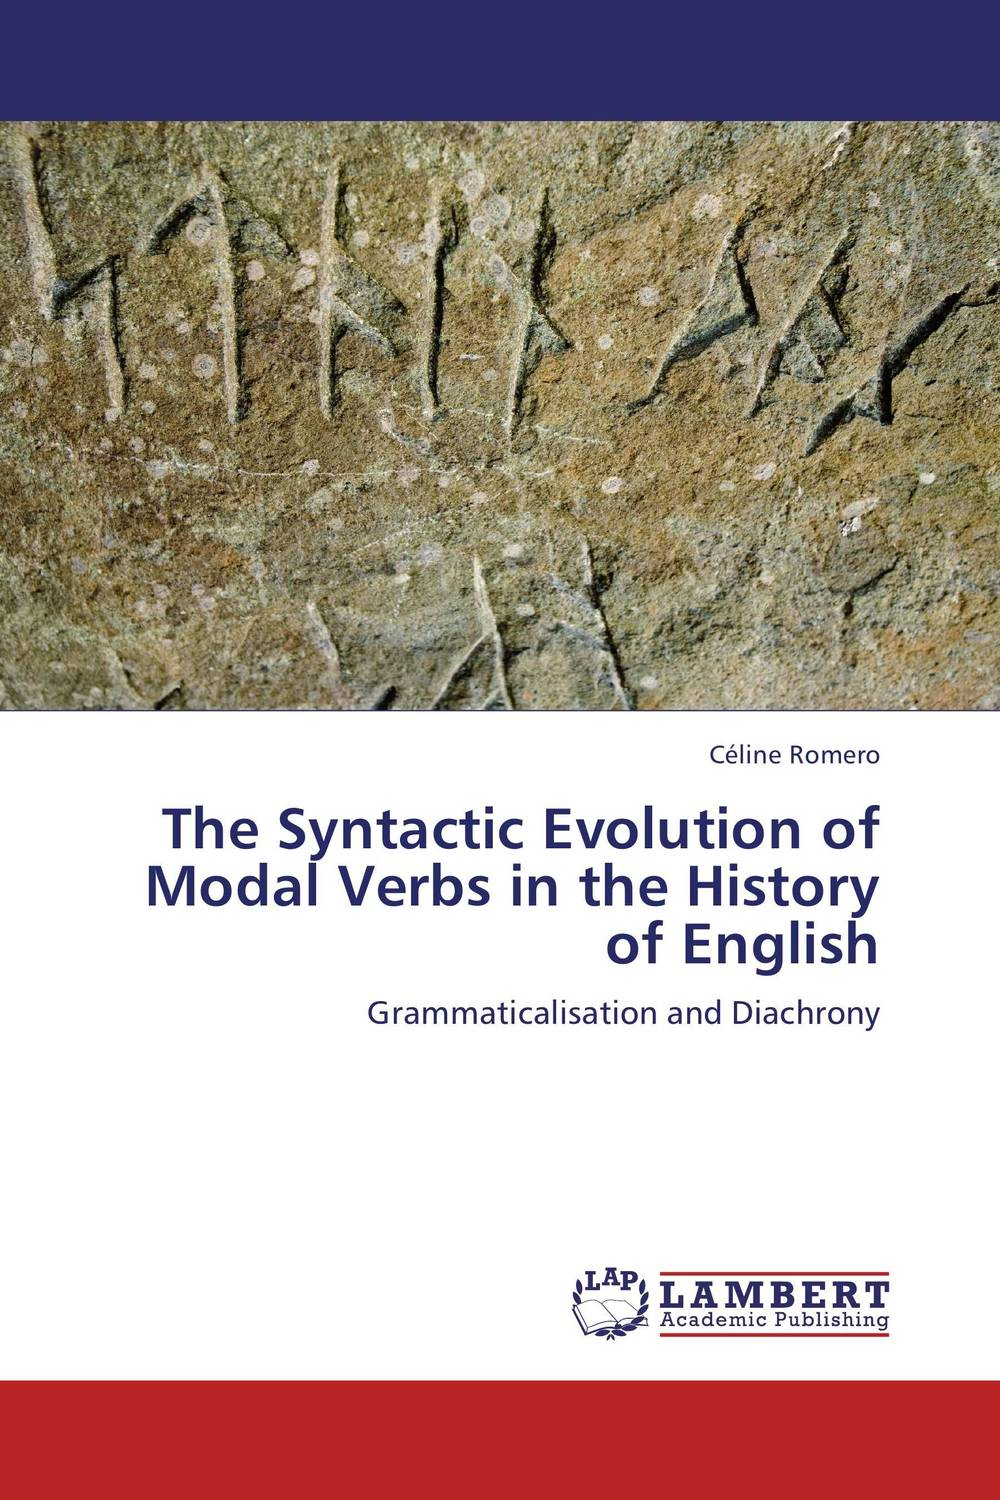 The Syntactic Evolution of Modal Verbs in the History of English elizavecca сыворотка с гиалуроновой кислотой hell pore control hyaluronic acid 97% 50 мл